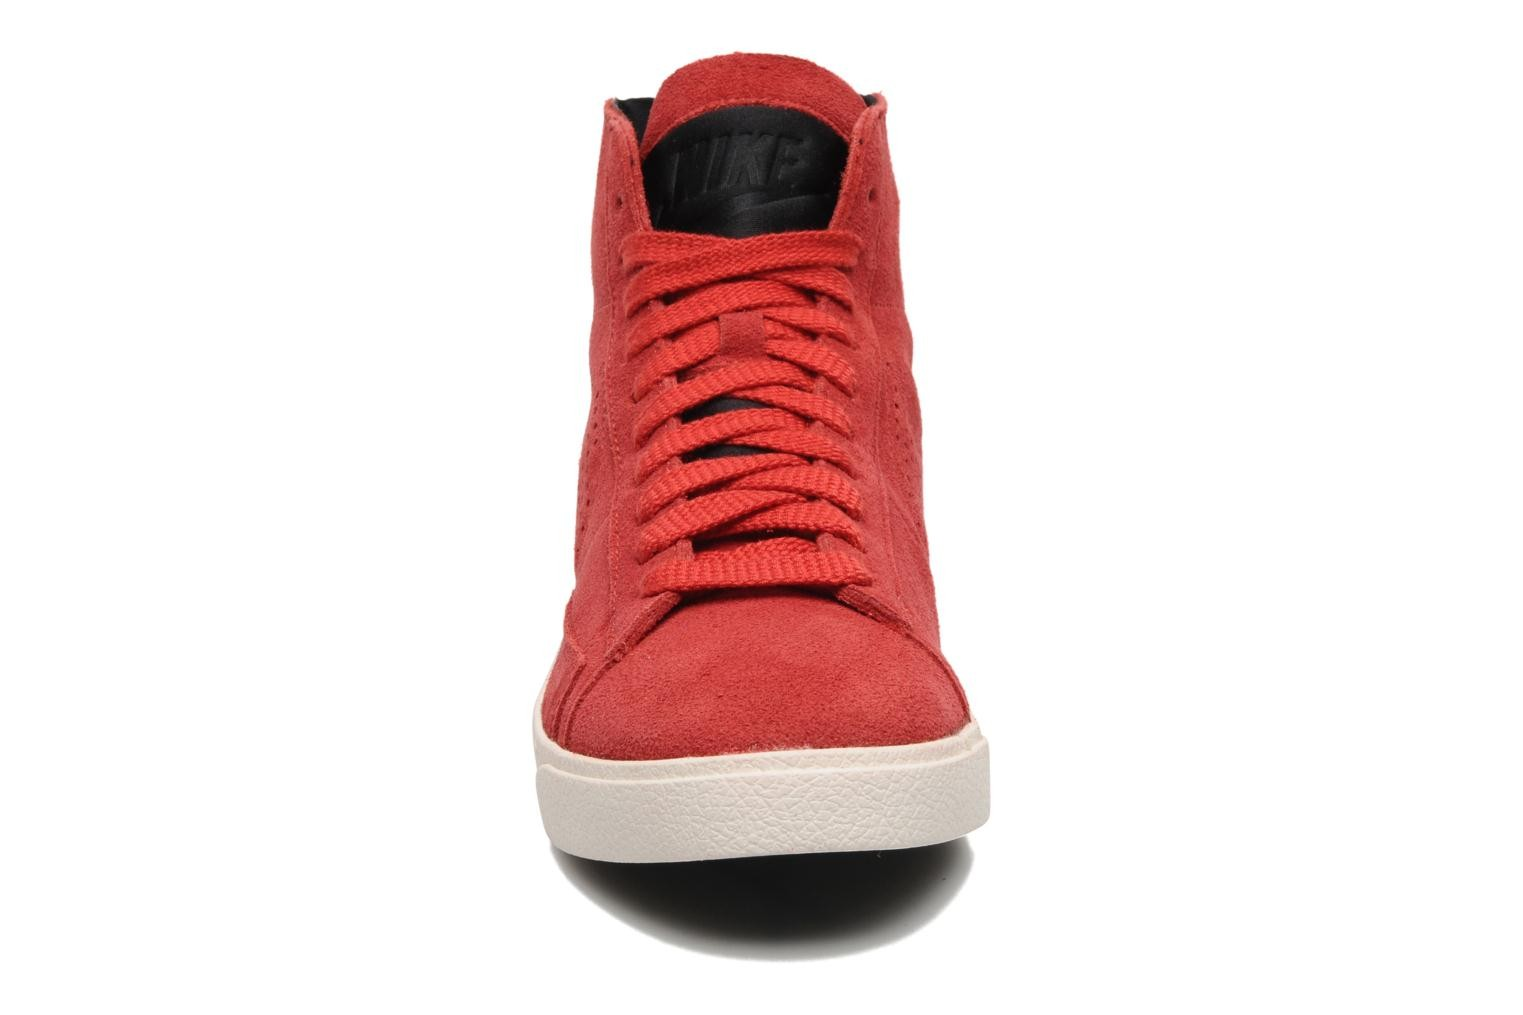 Nike Blazer Lux University Red Sail Black Men's Trainers